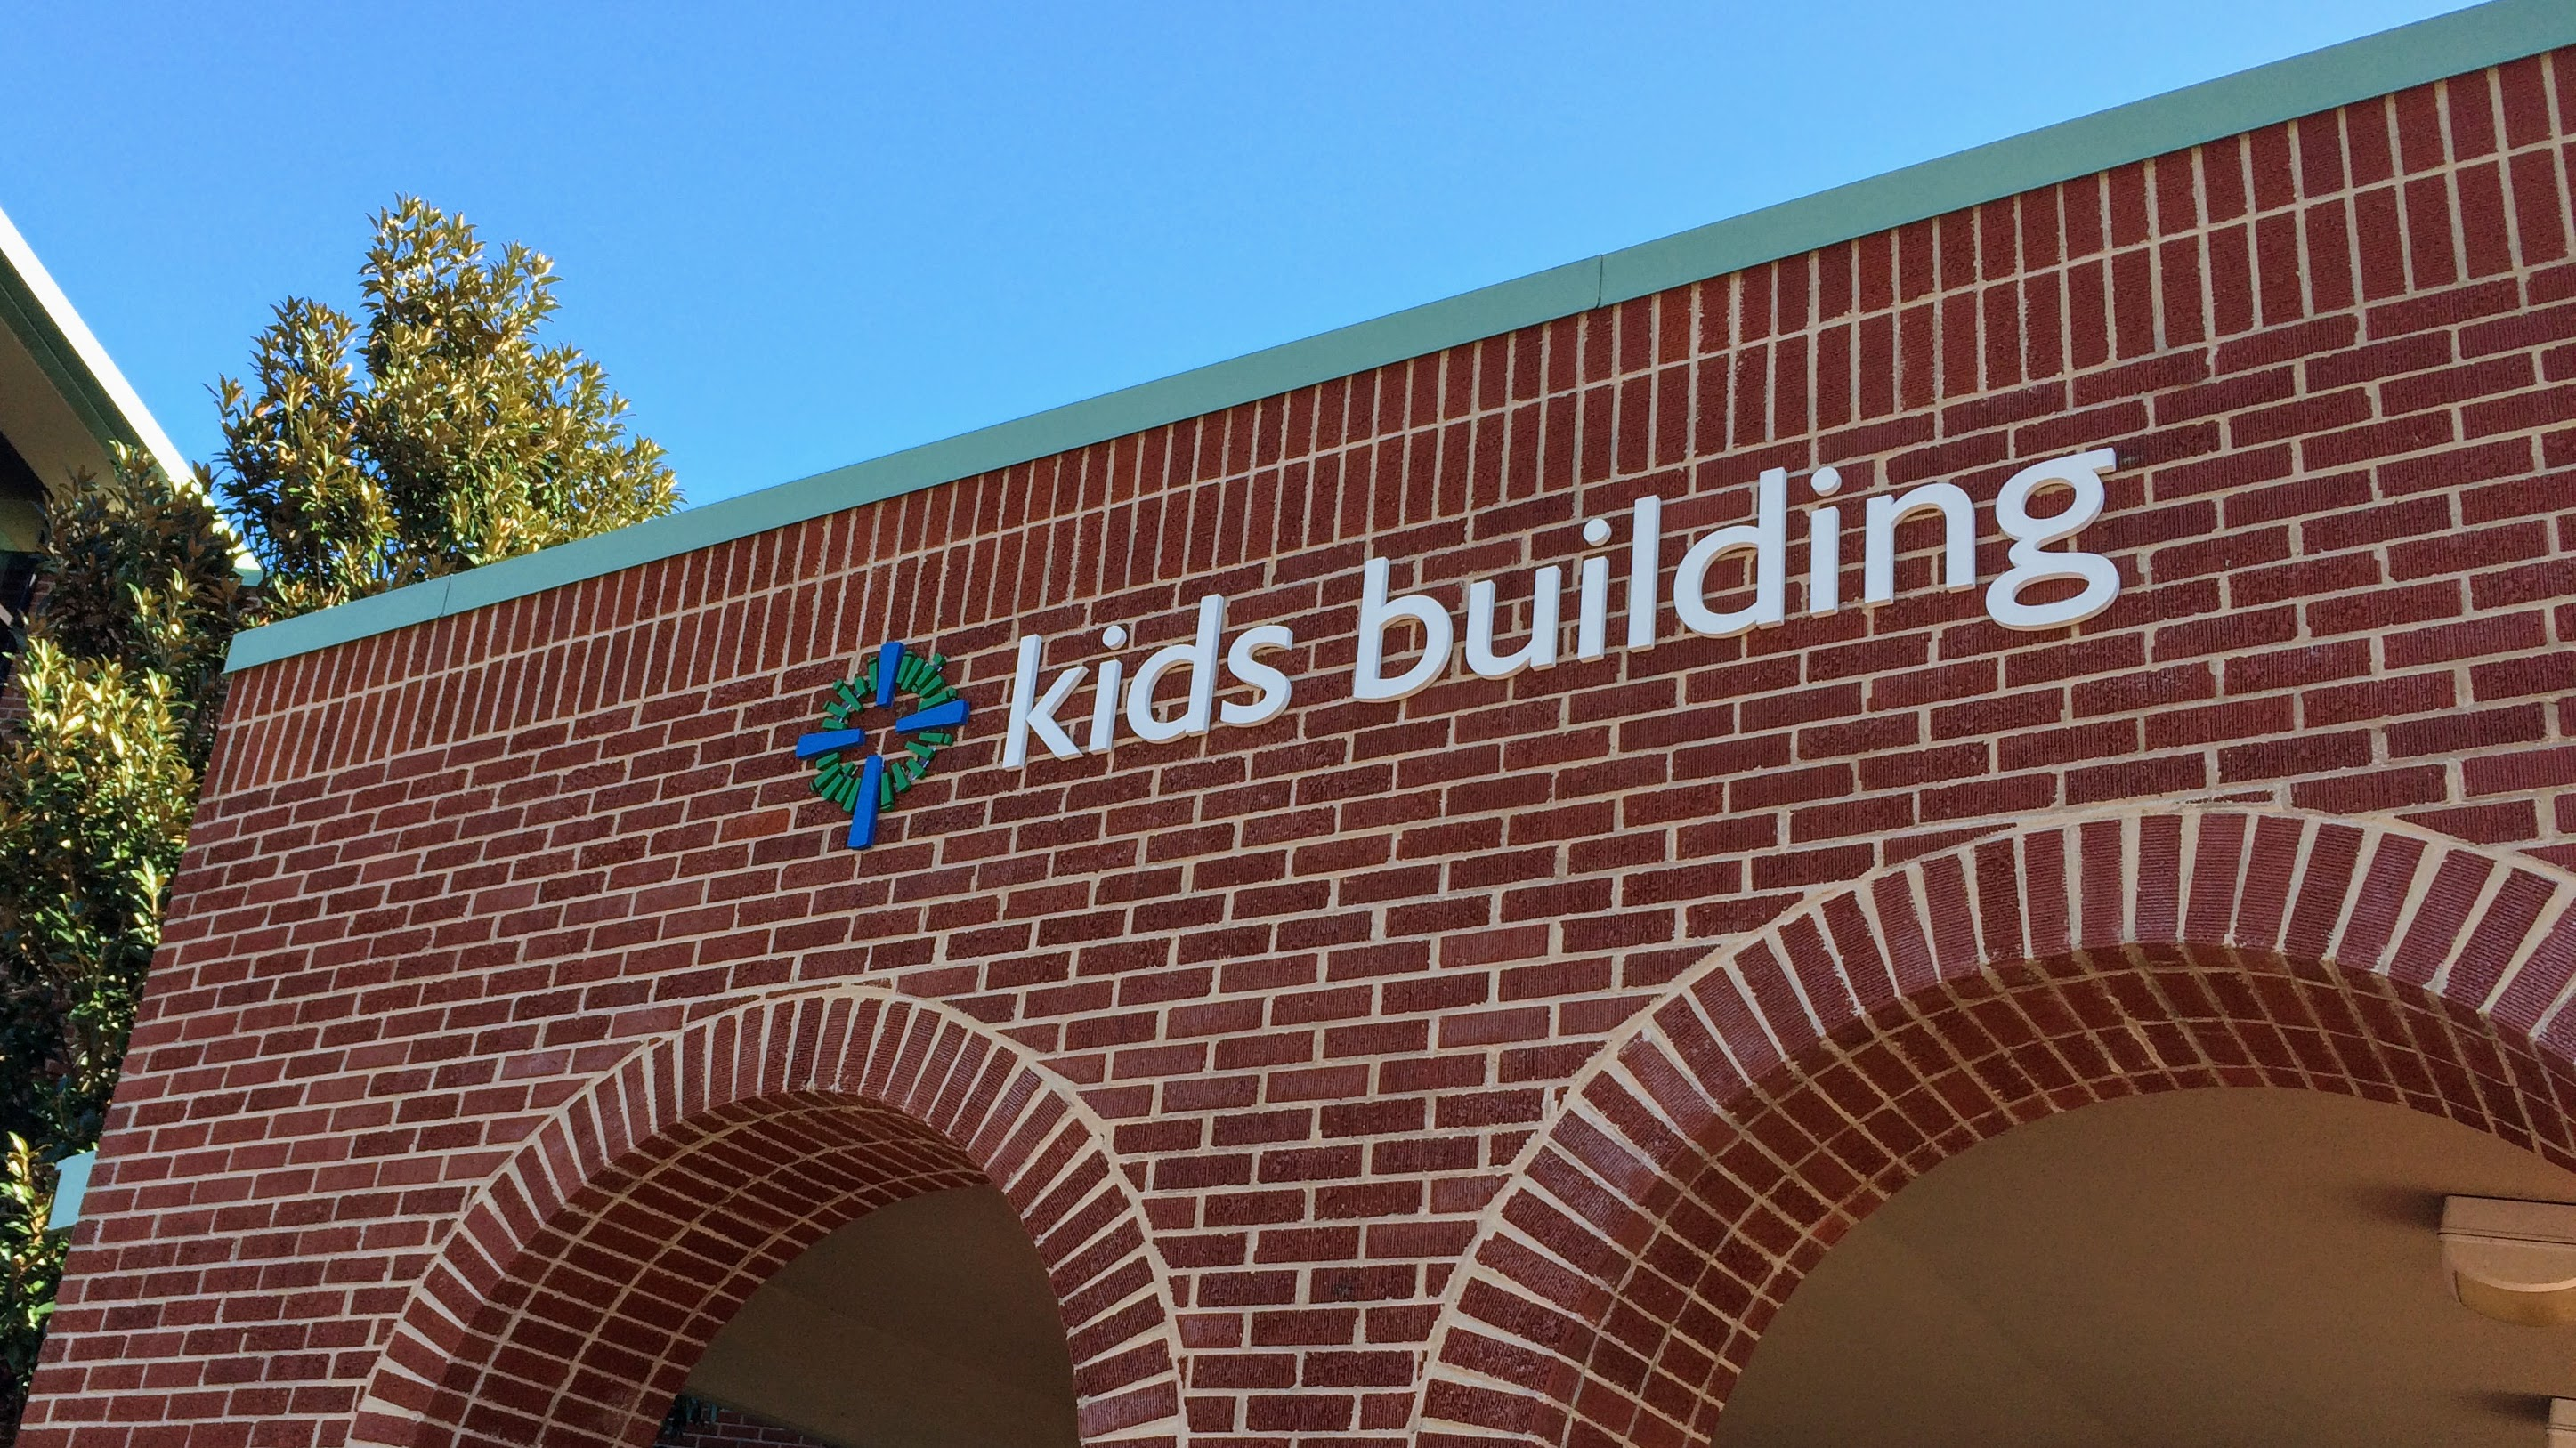 Exterior wayfinding for kids building on church campus with dimensional letters - signgeek Wayfinding